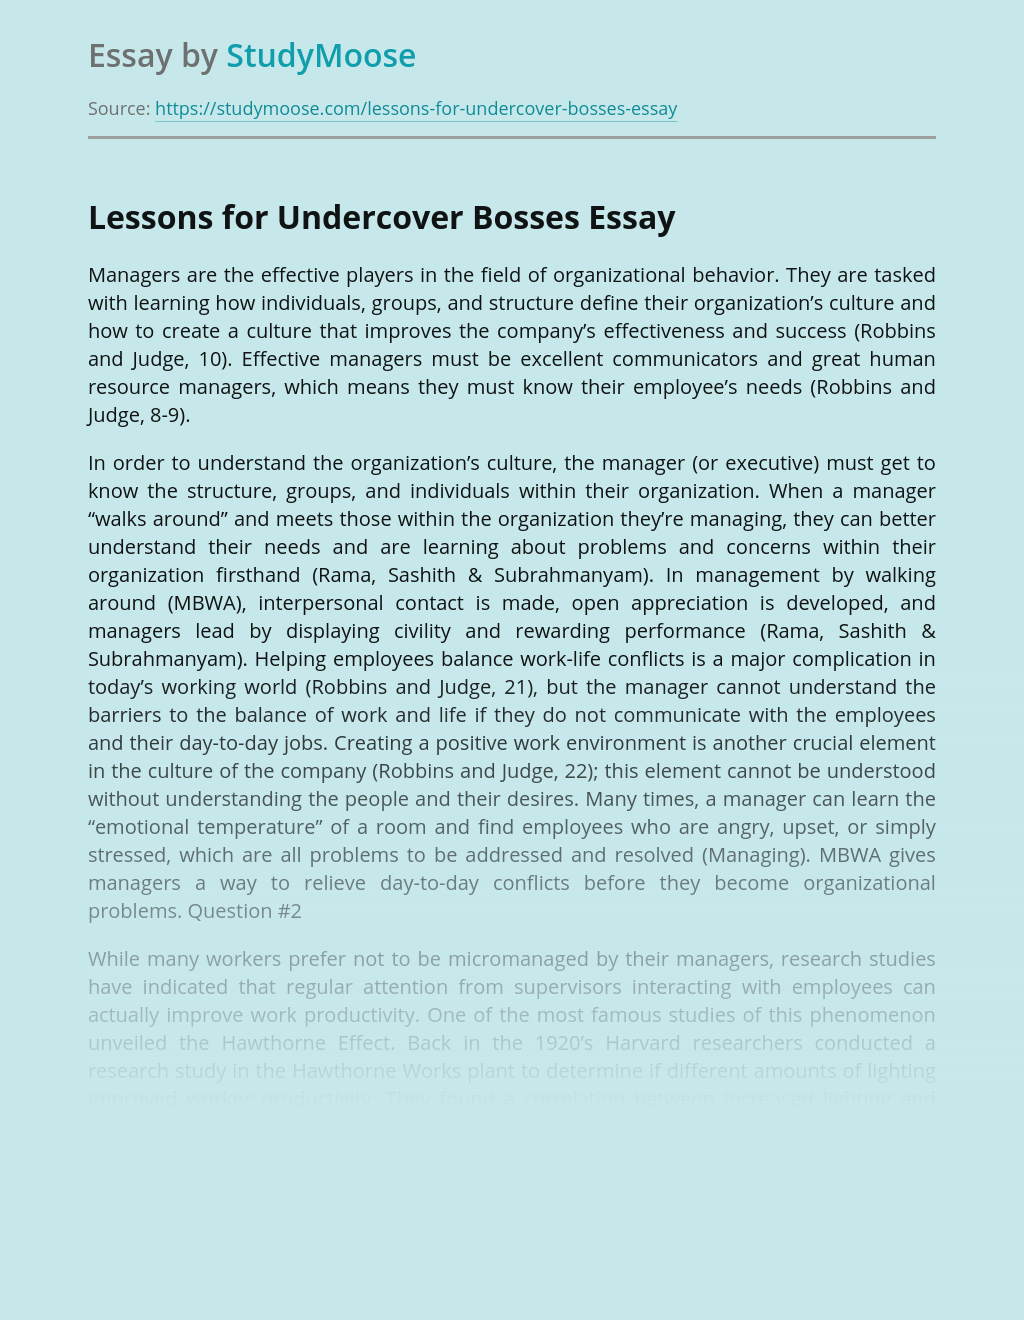 Lessons for Undercover Bosses